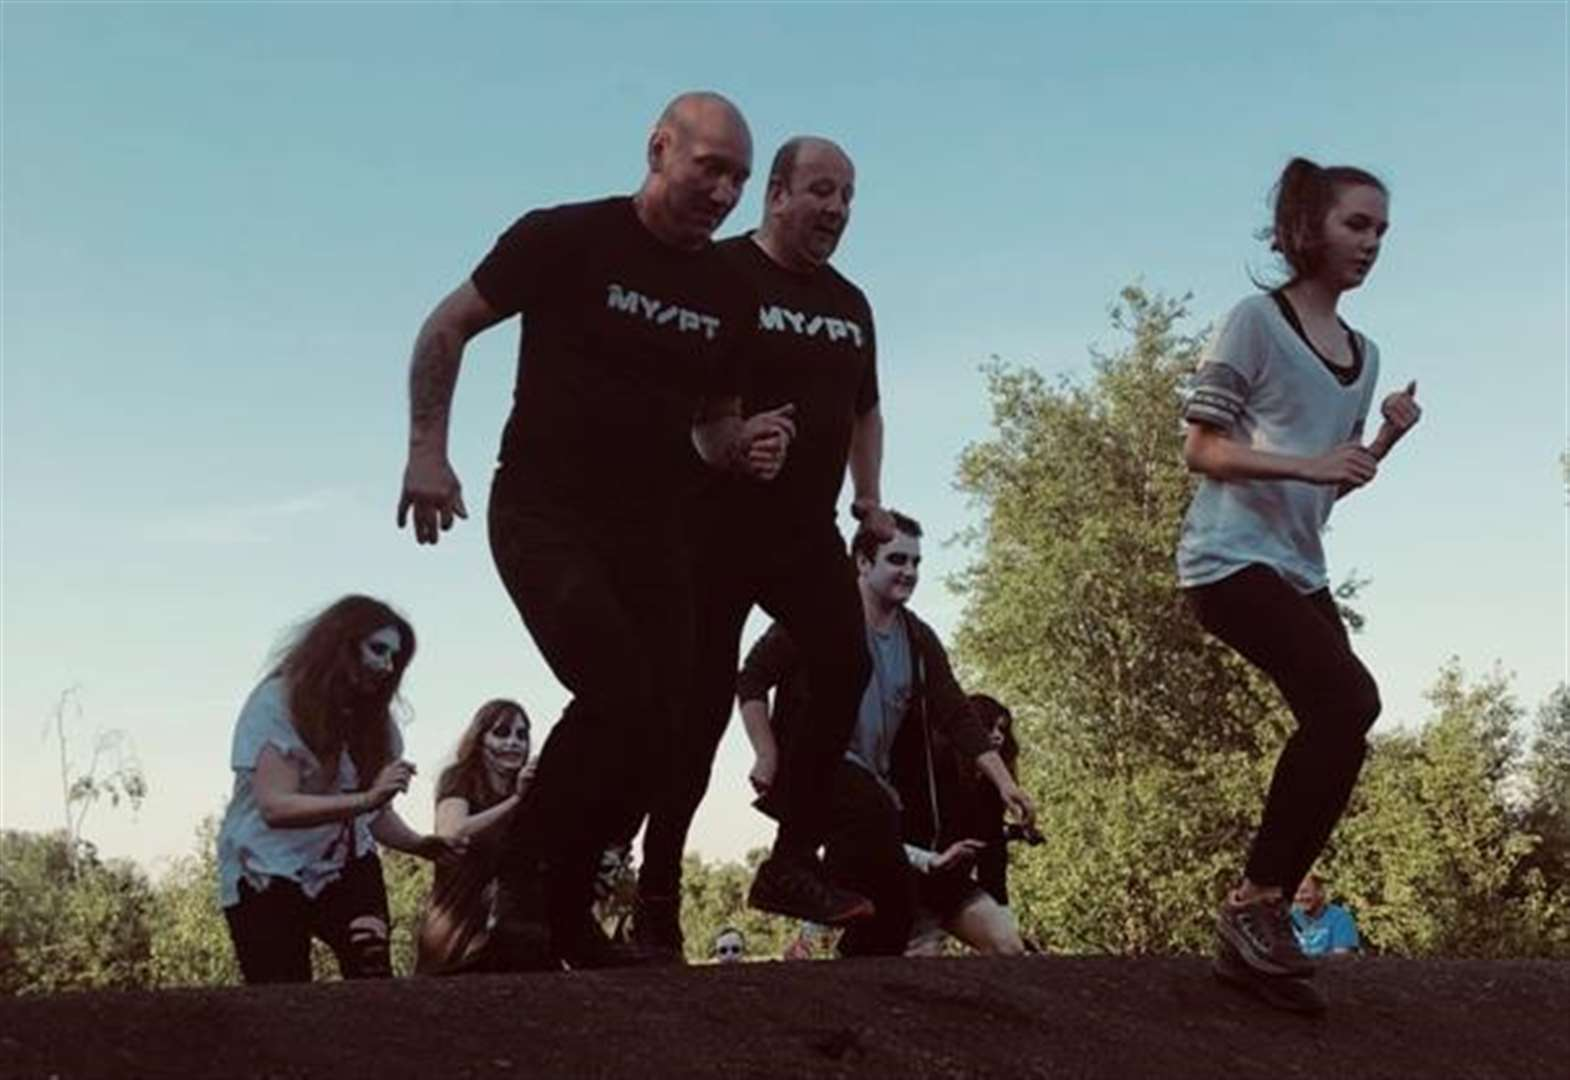 Raise cash for your favourite good cause at zombie challenge